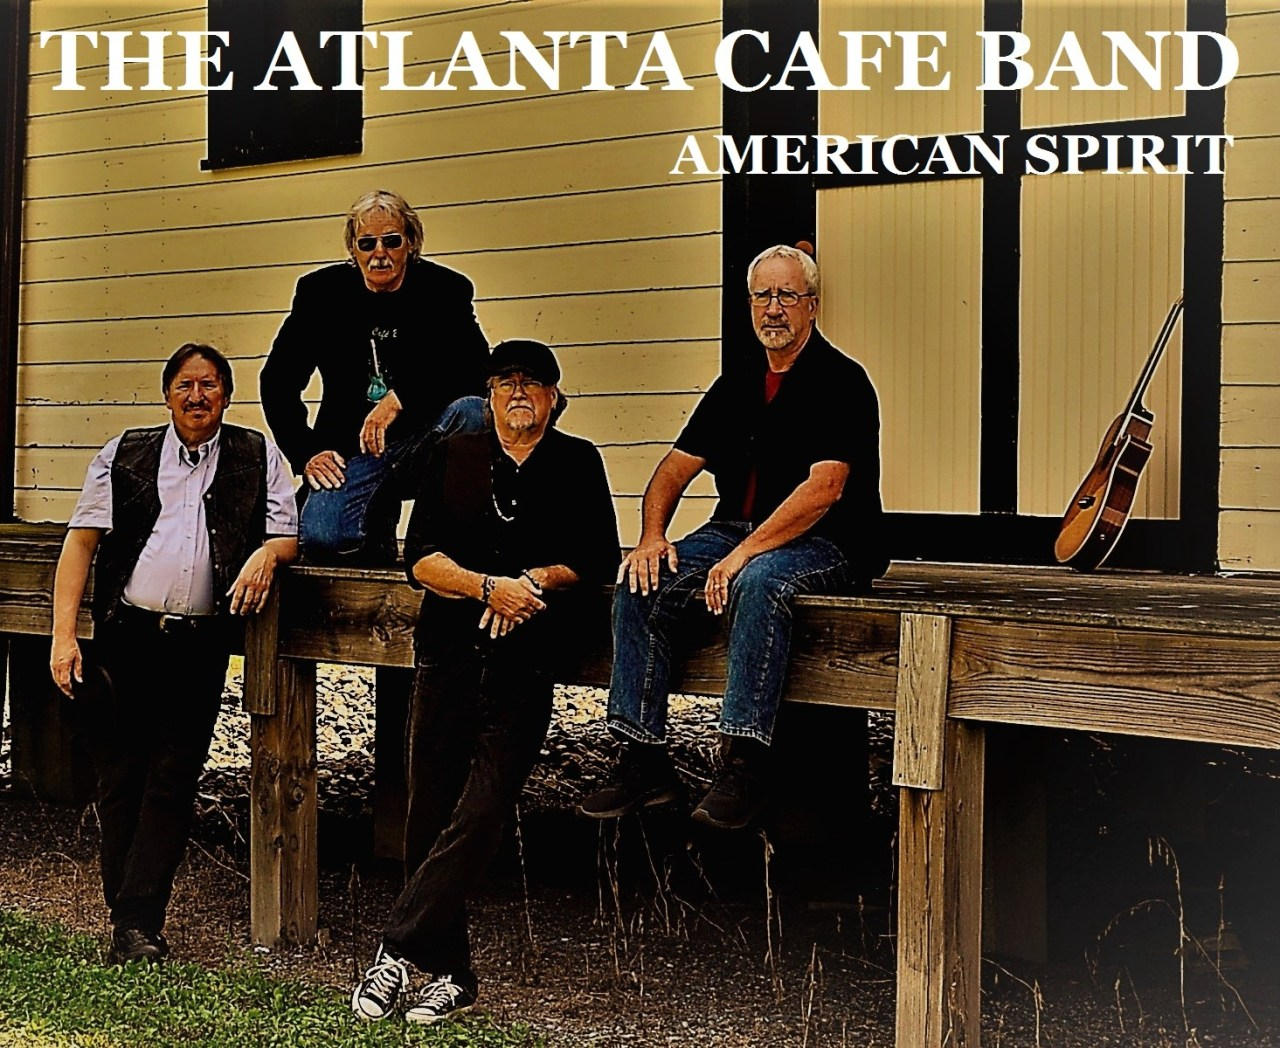 The Atlanta Cafe Band